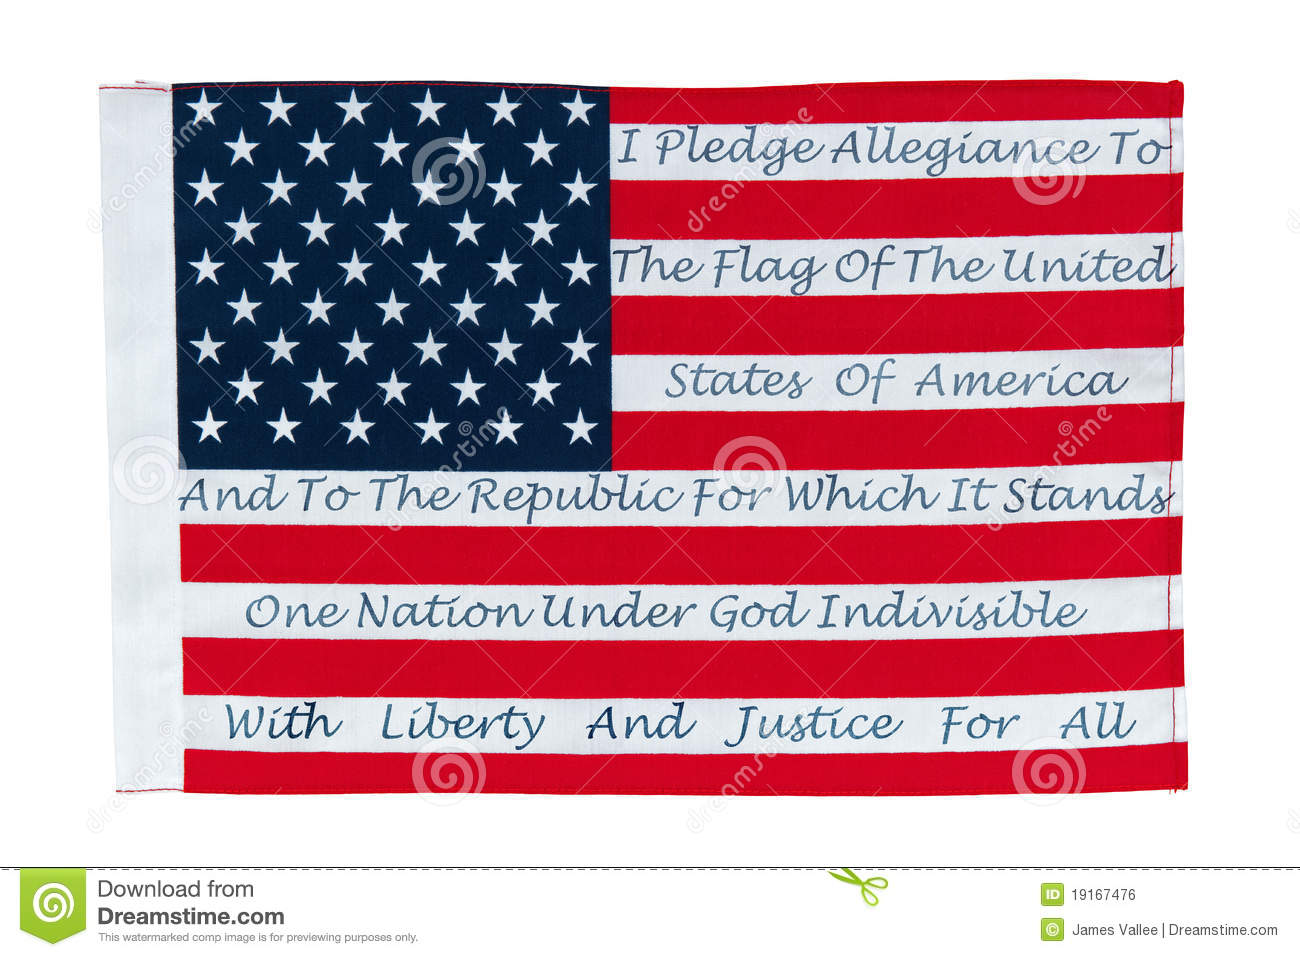 The pledge of allegiance instrumental music download